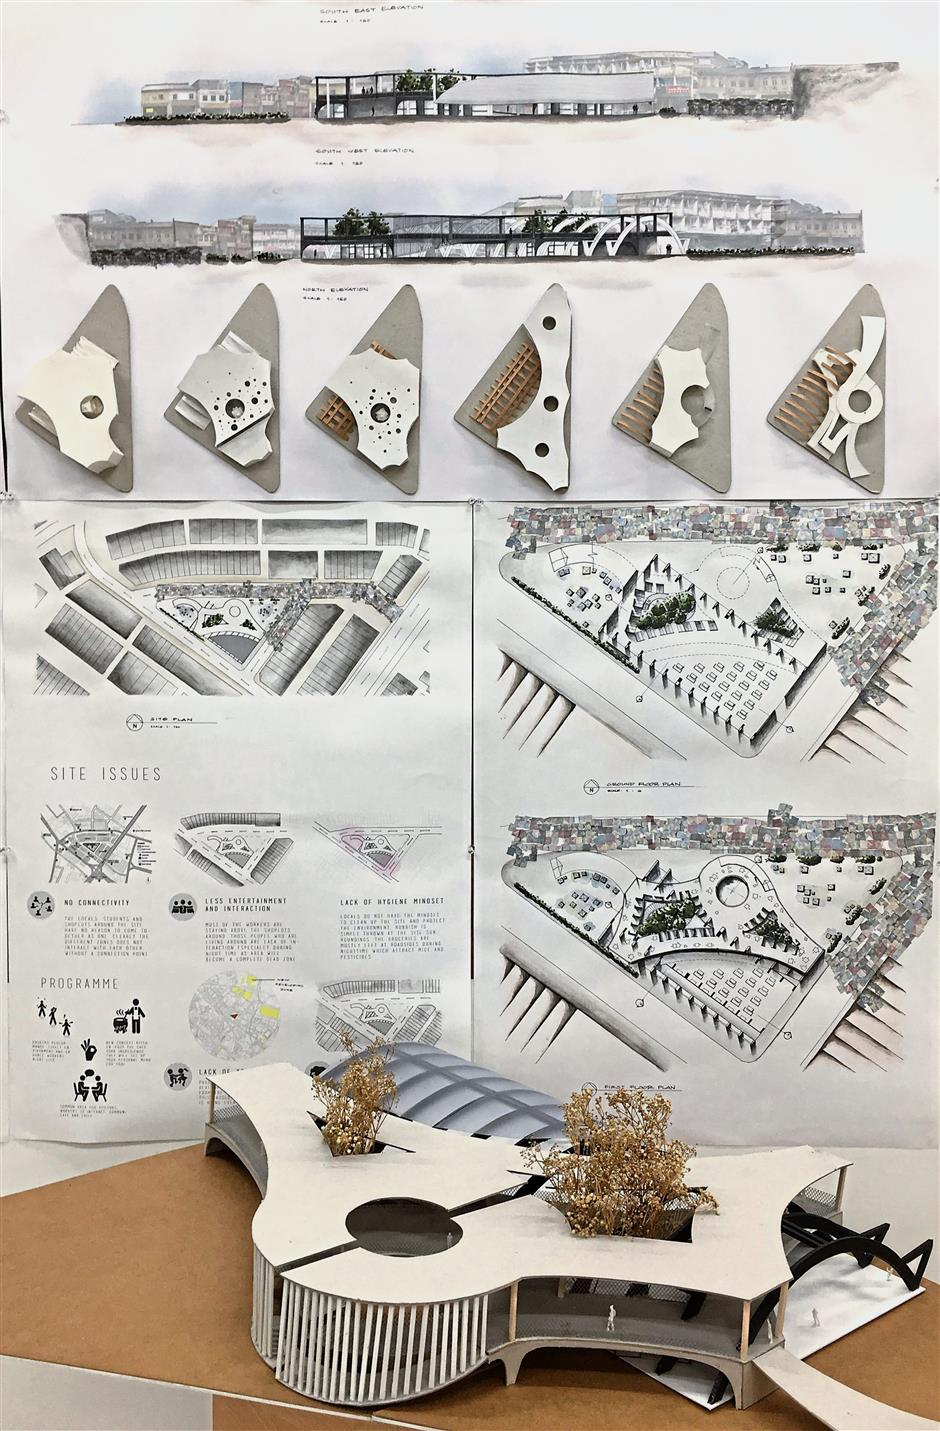 Student Ching Wee Han's design and scale model of Pudu Market.